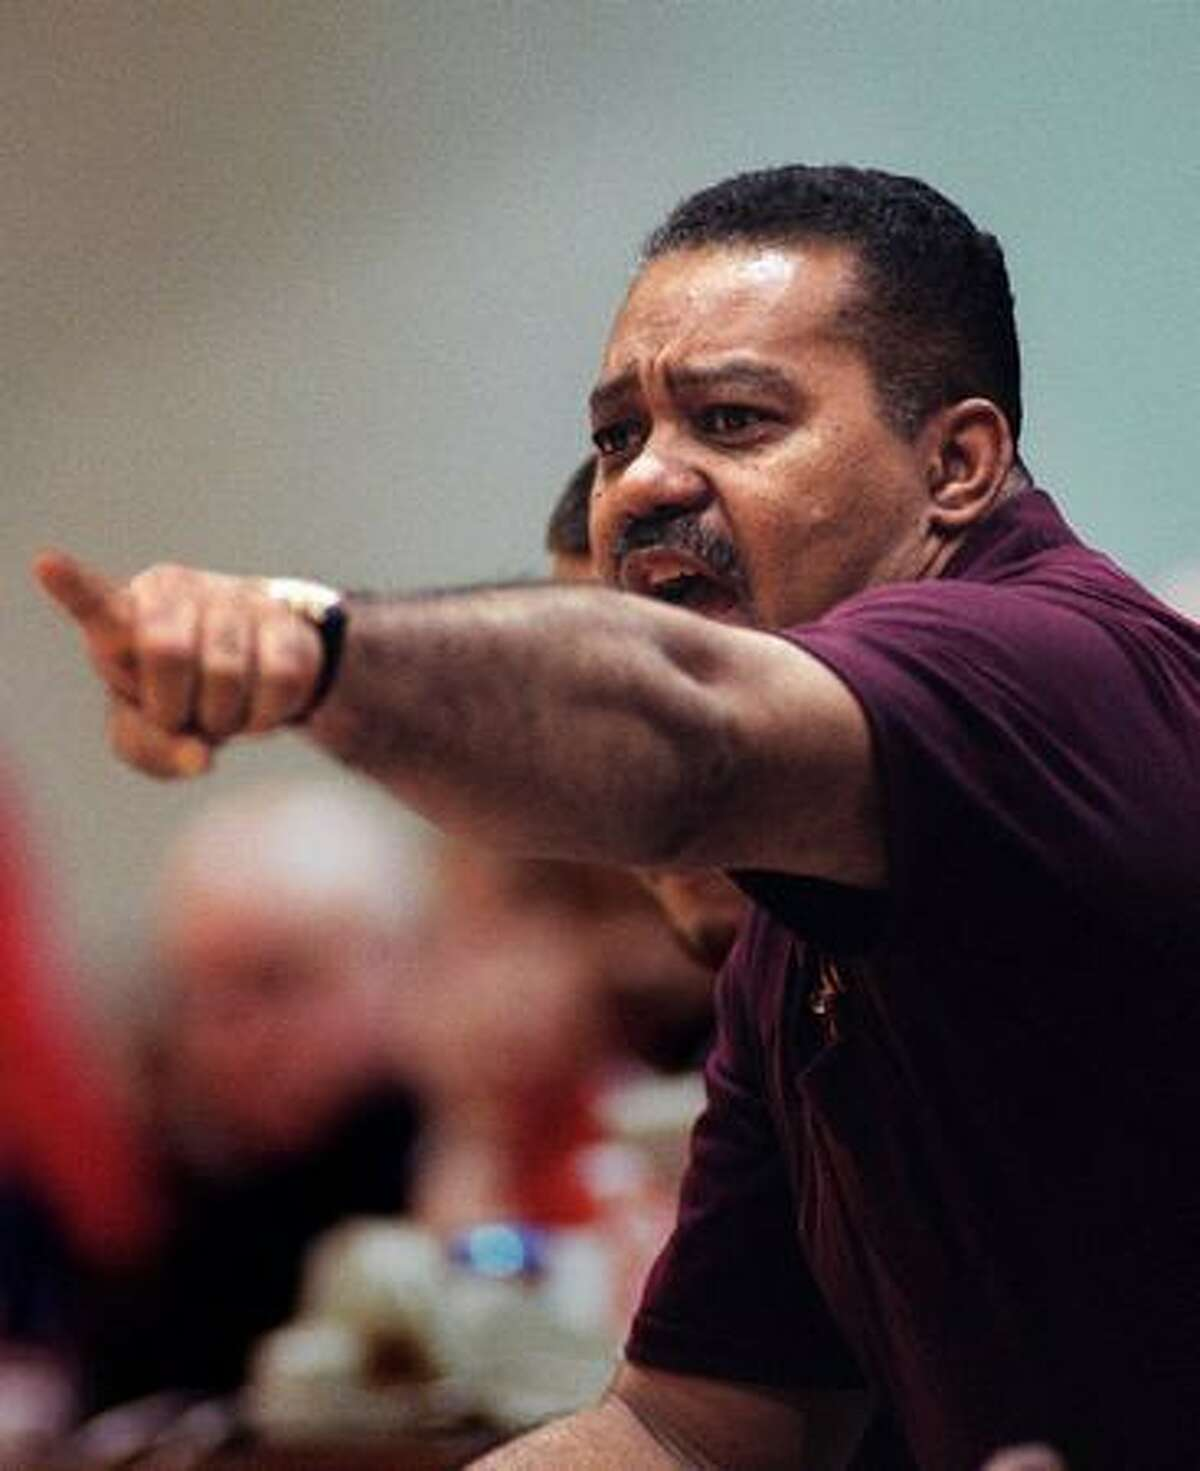 O'Dea basketball coach Phil Lumpkin yells to a player during the 1997 basketball championship tournament at Seattle Pacific University. O'Dea kept its perfect record intact and won the Sea-King District title that night, beating Cleveland 84-54. (Ellen M. Banner/seattlepi.com file)